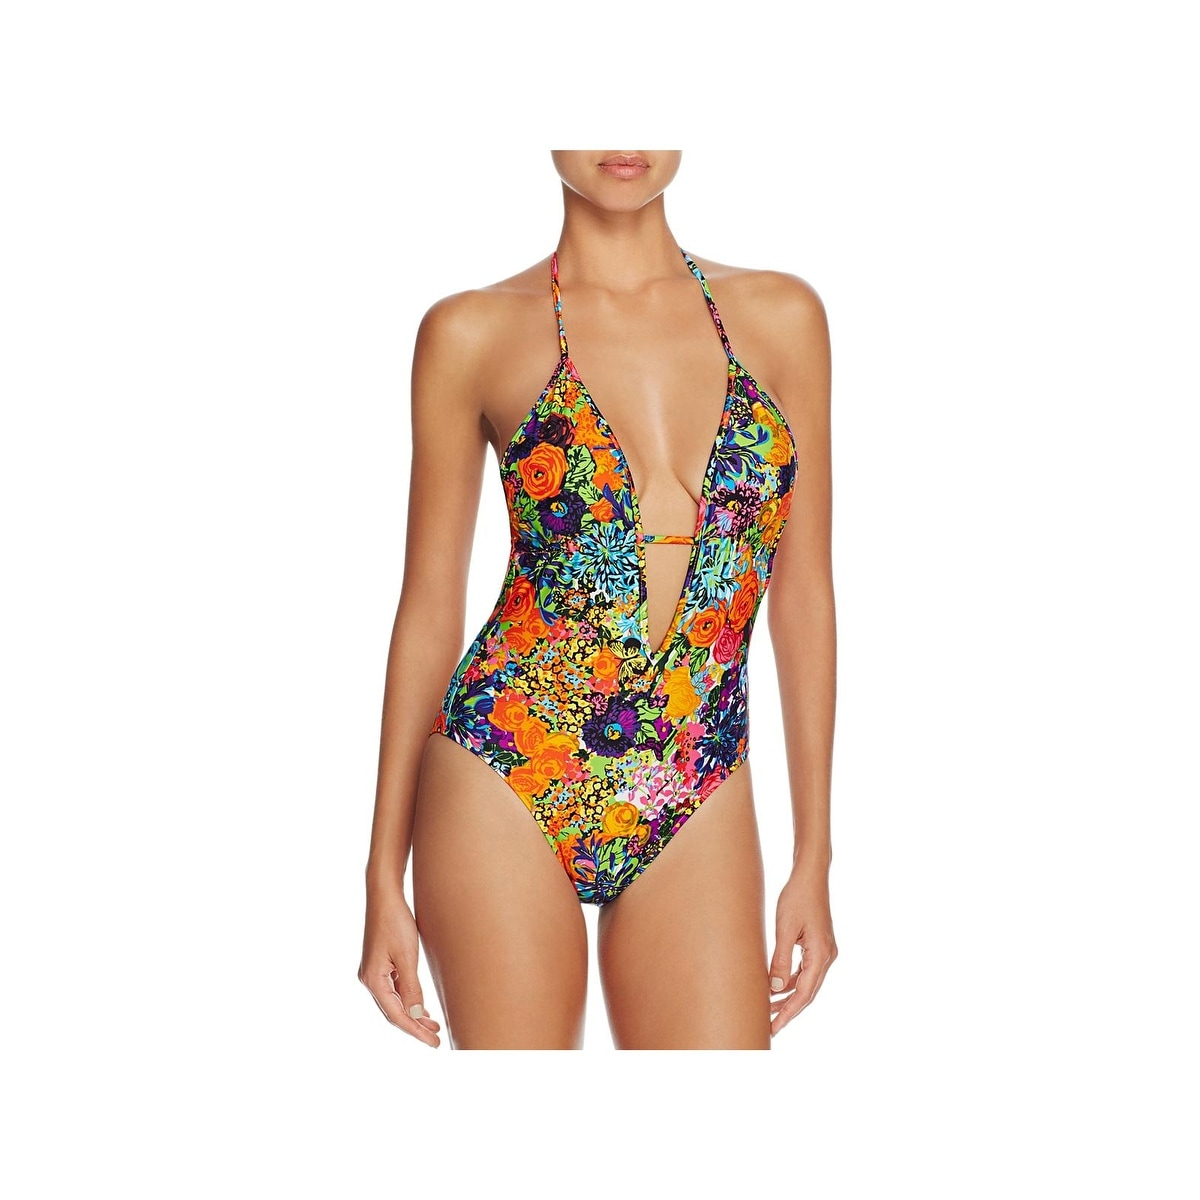 0cc38553c3c19 Milly Womens Acapulco Maillot Strappy Floral Print One-Piece Swimsuit